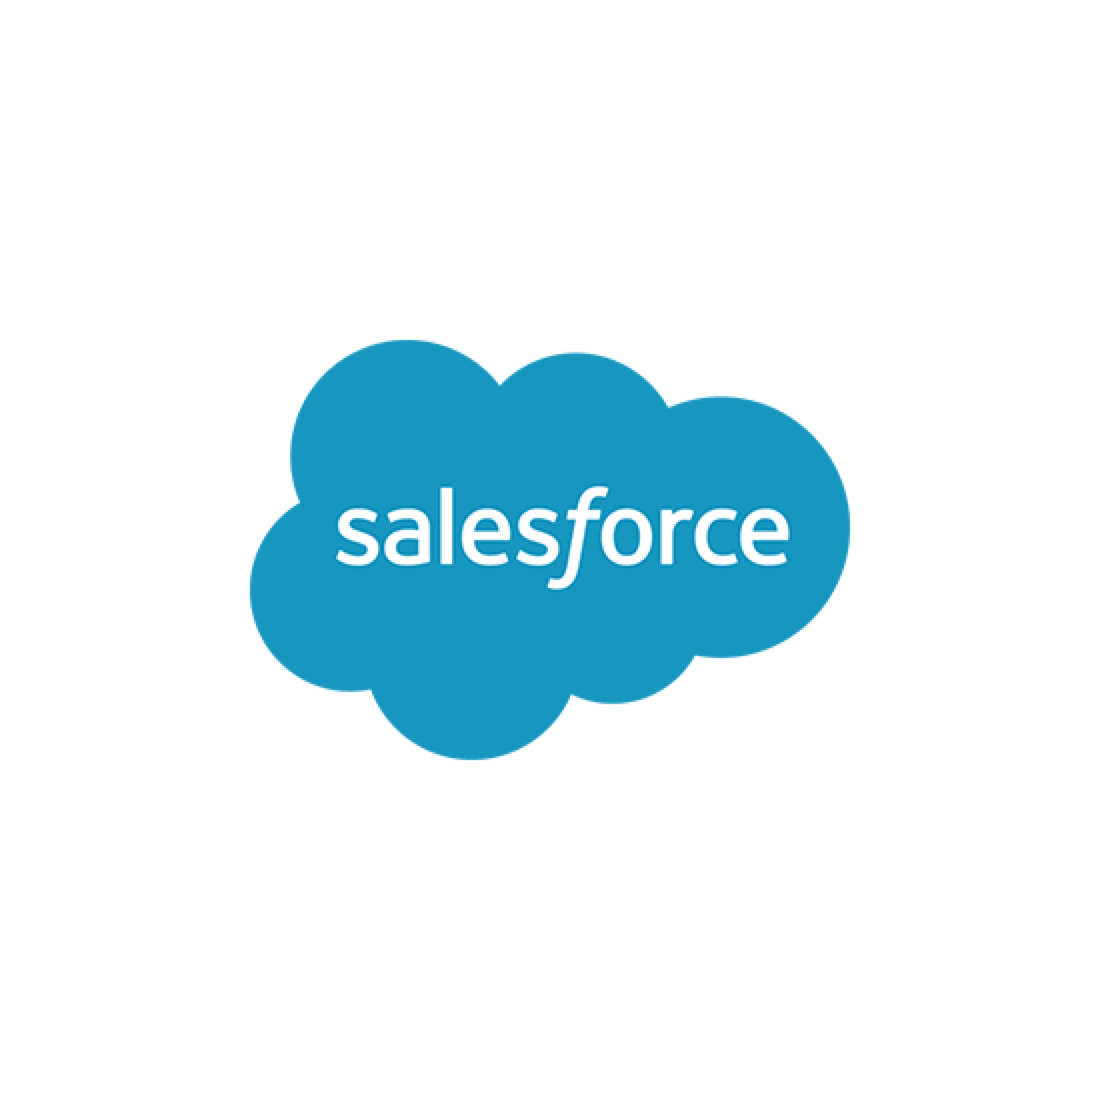 """Salesforce"""